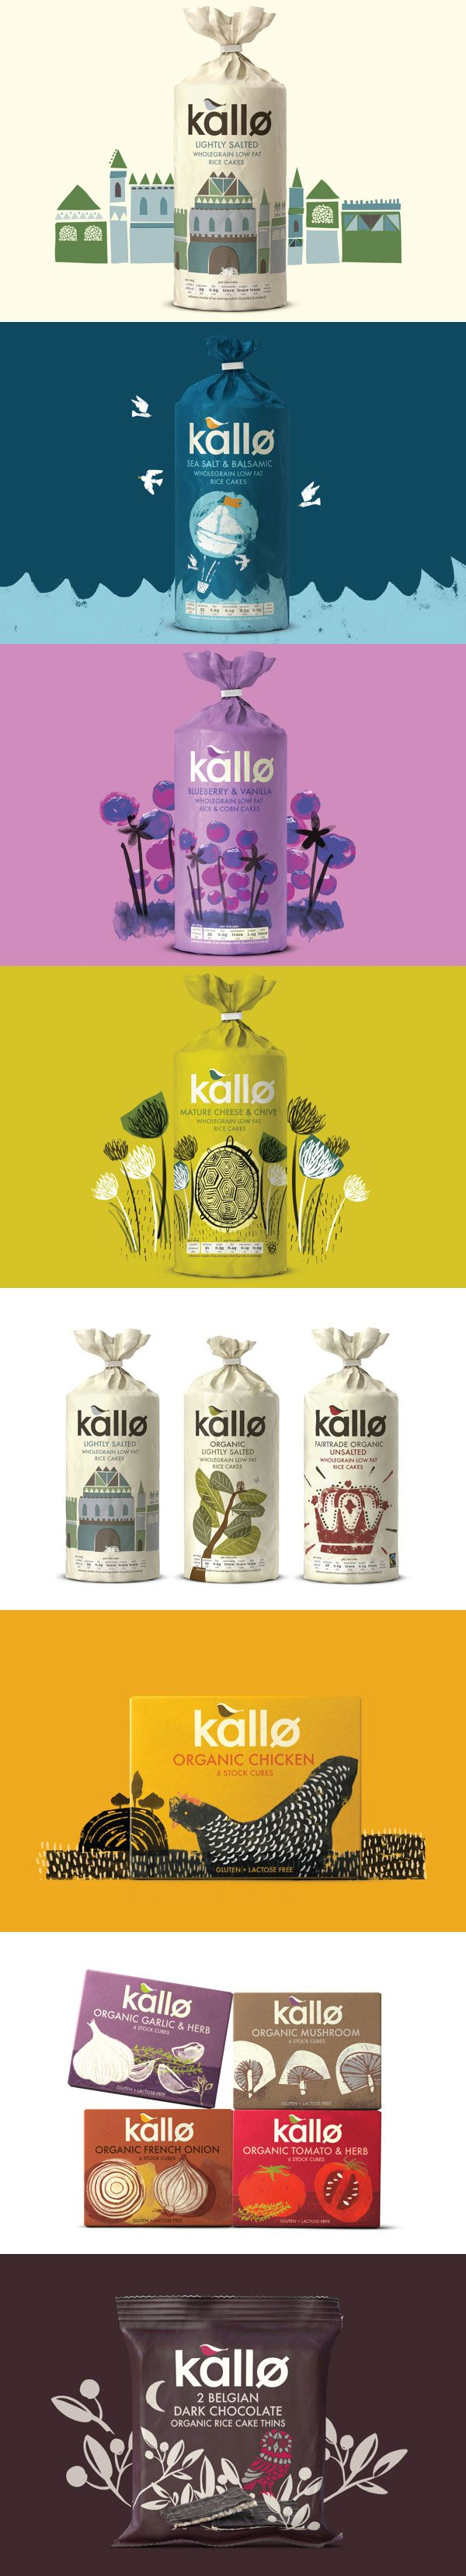 Cute design - Kallo Branding, Graphic Design, Packaging By Big Fish curated by Packaging Diva PD clever #snacks #packaging PD